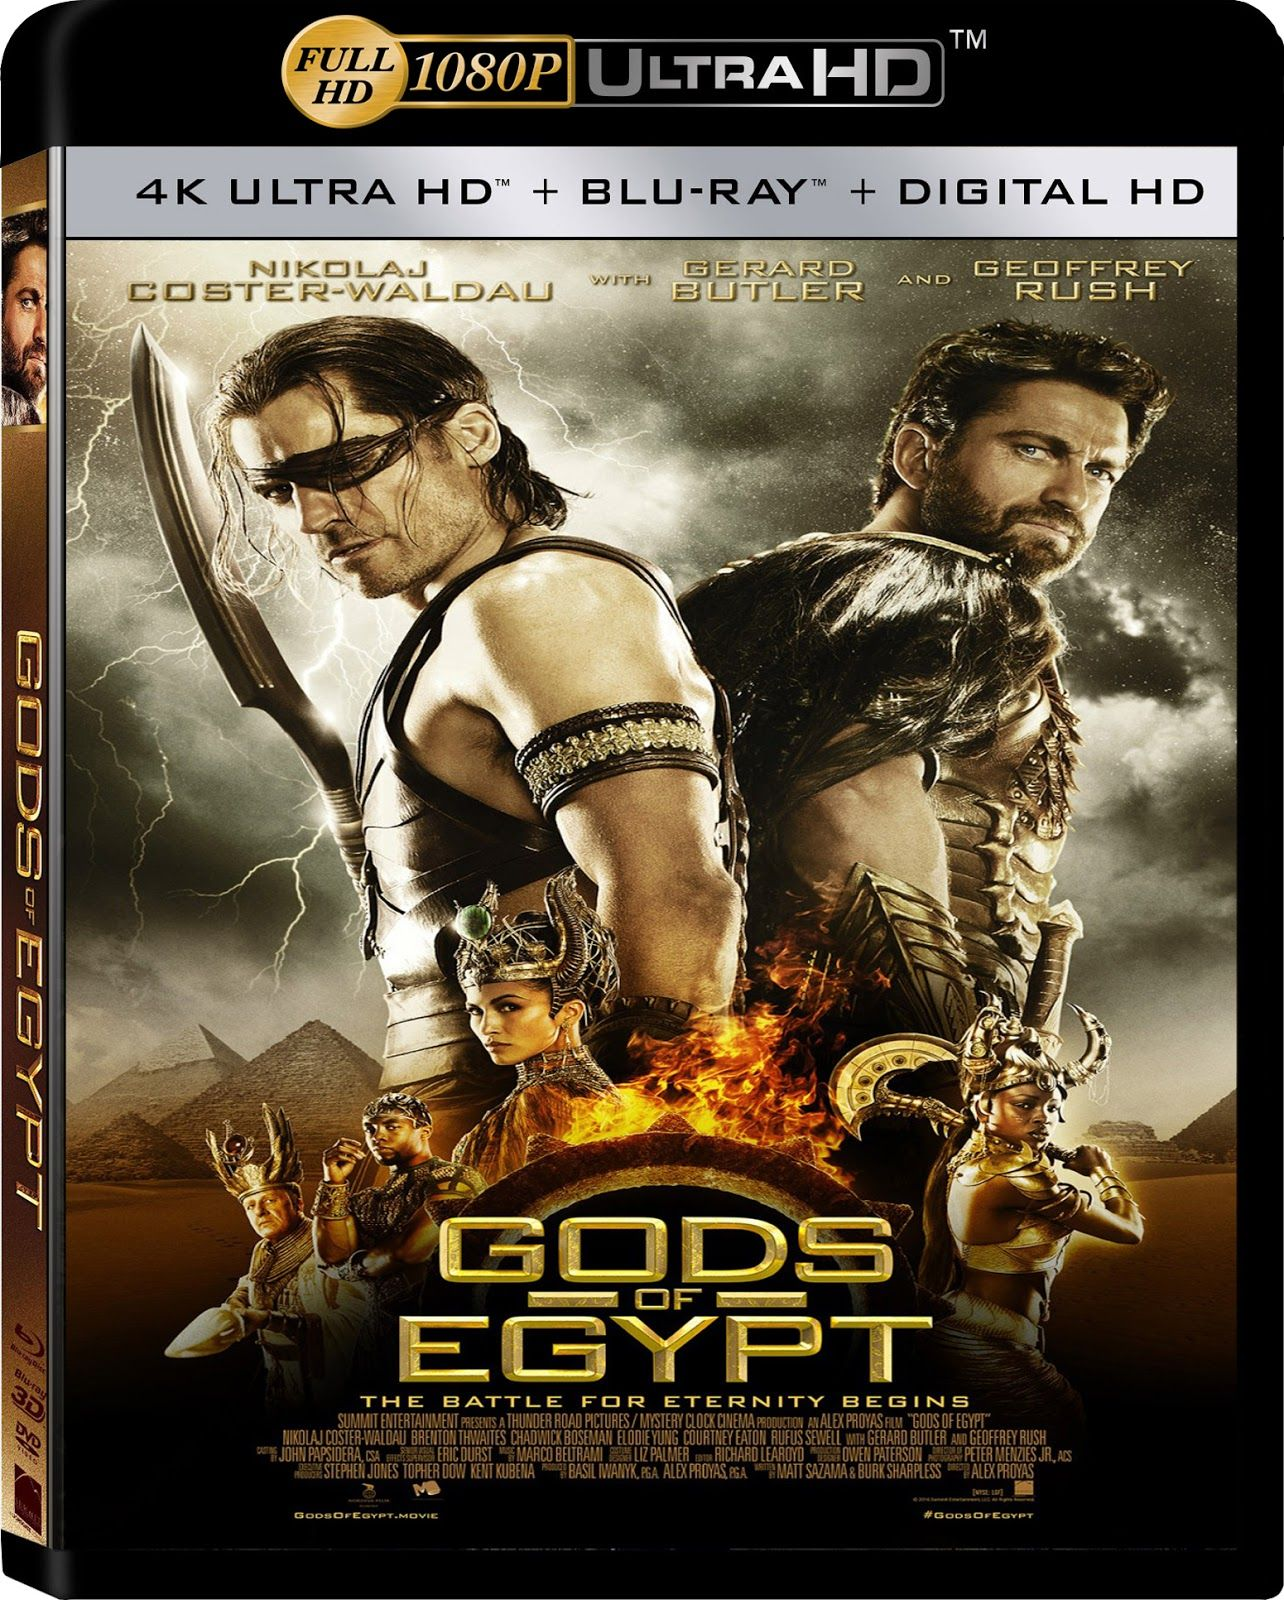 Gods Of Egypt (2016) Hindi Dubbed 1080p HEVC BluRay